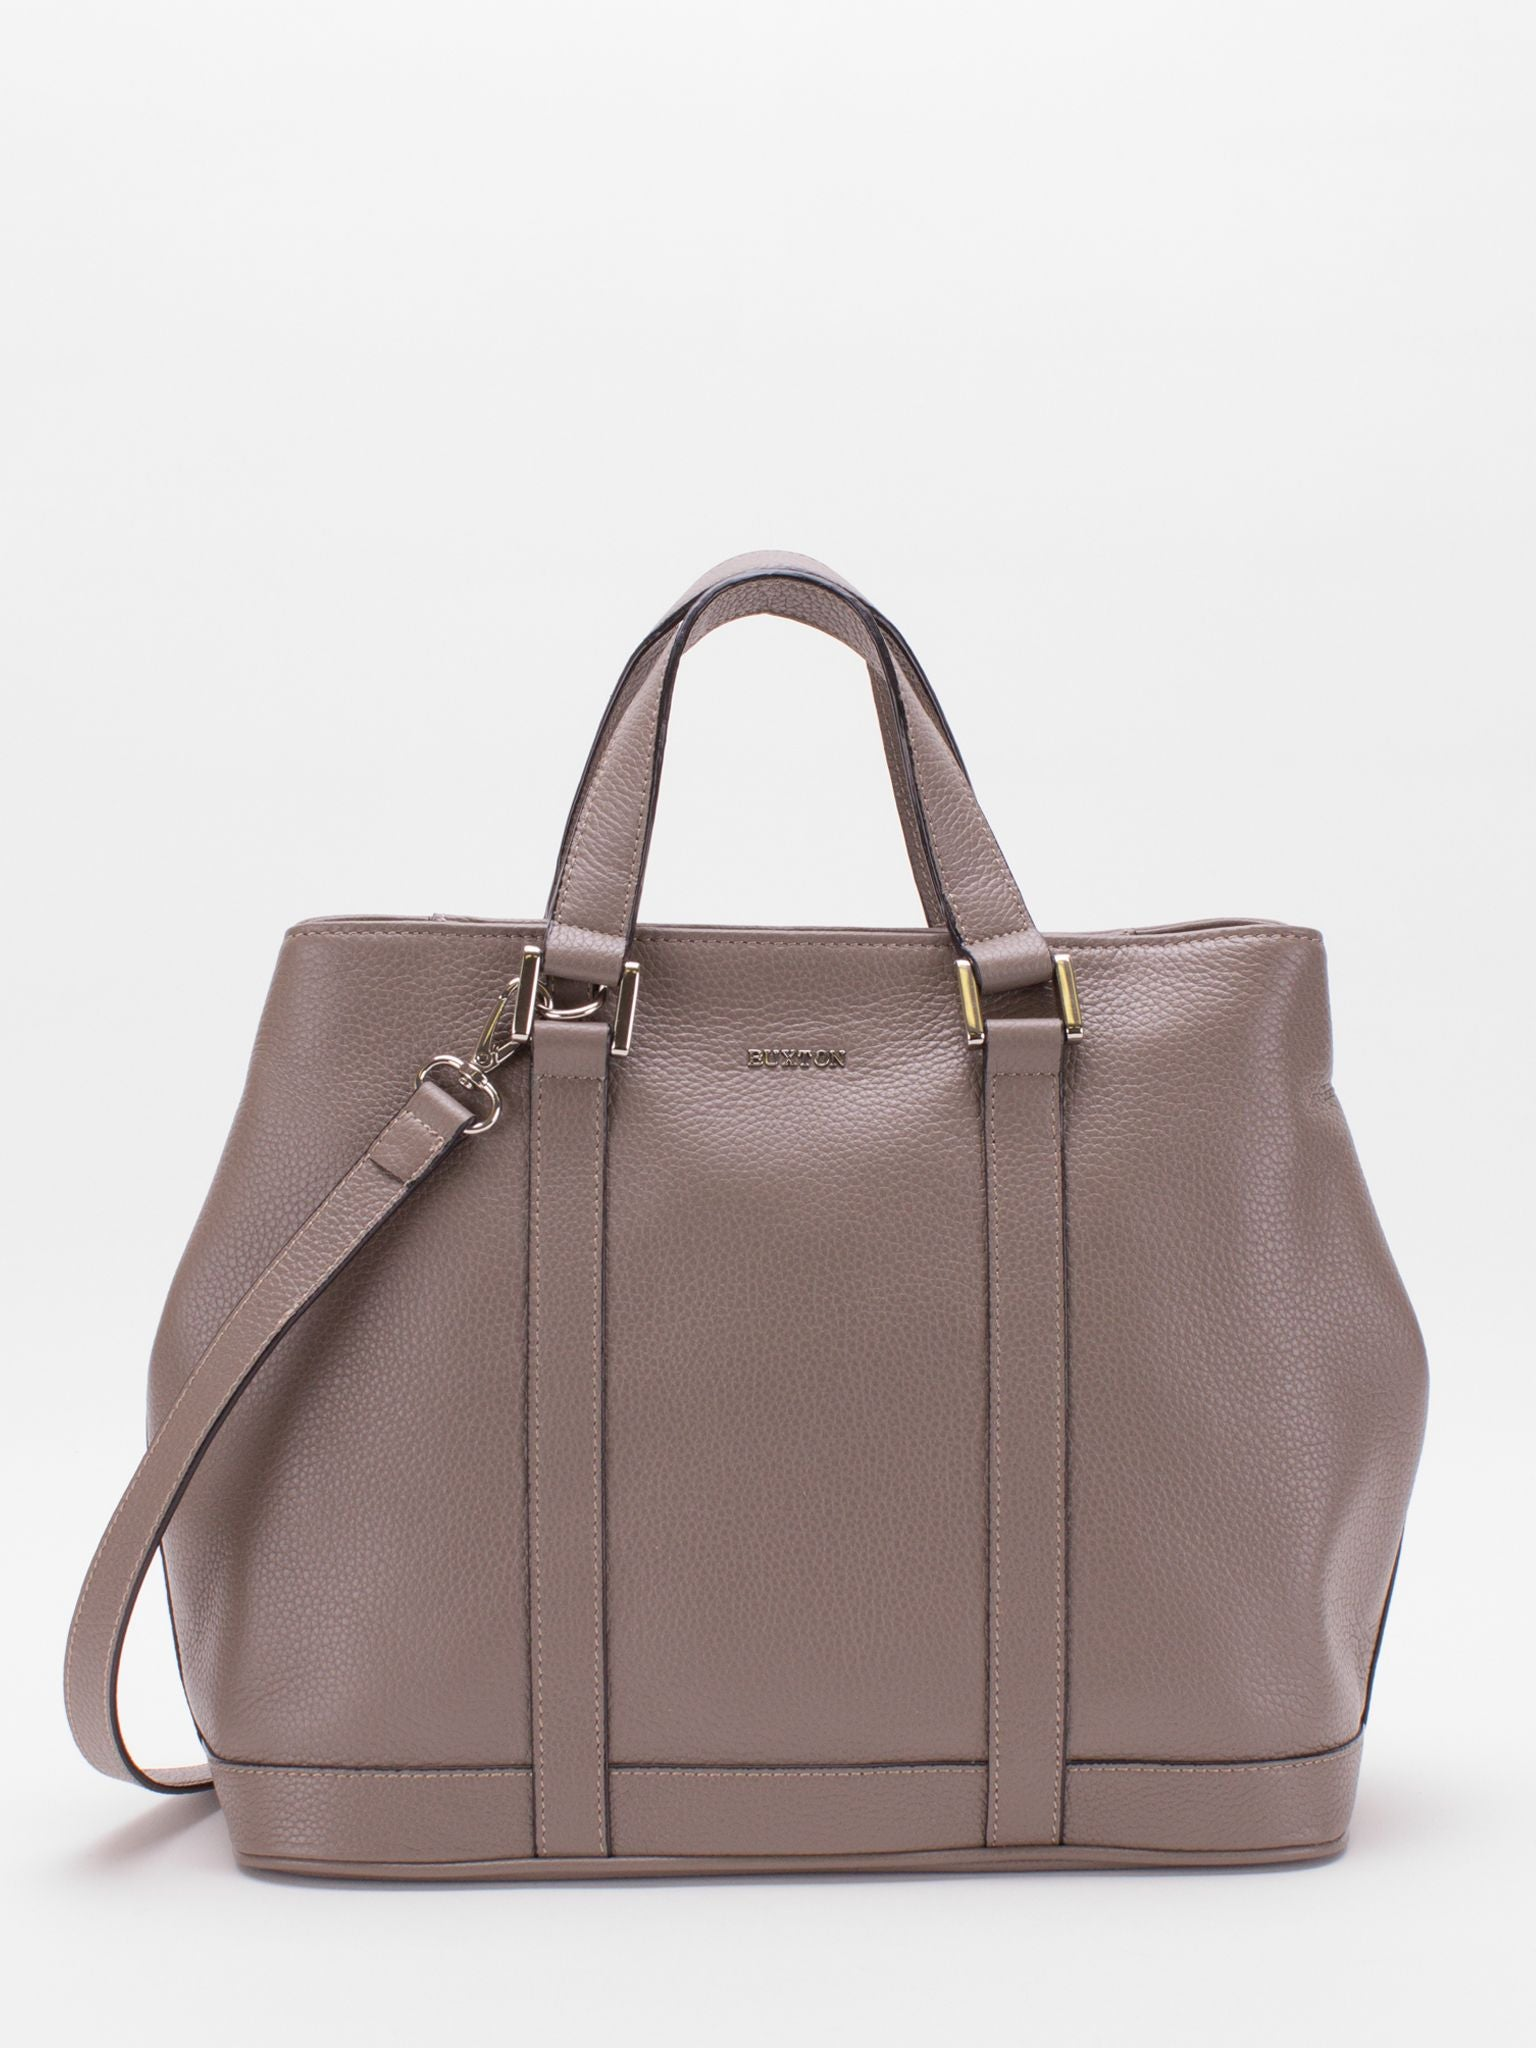 Adelaide Leather Satchel - Taupe Grey